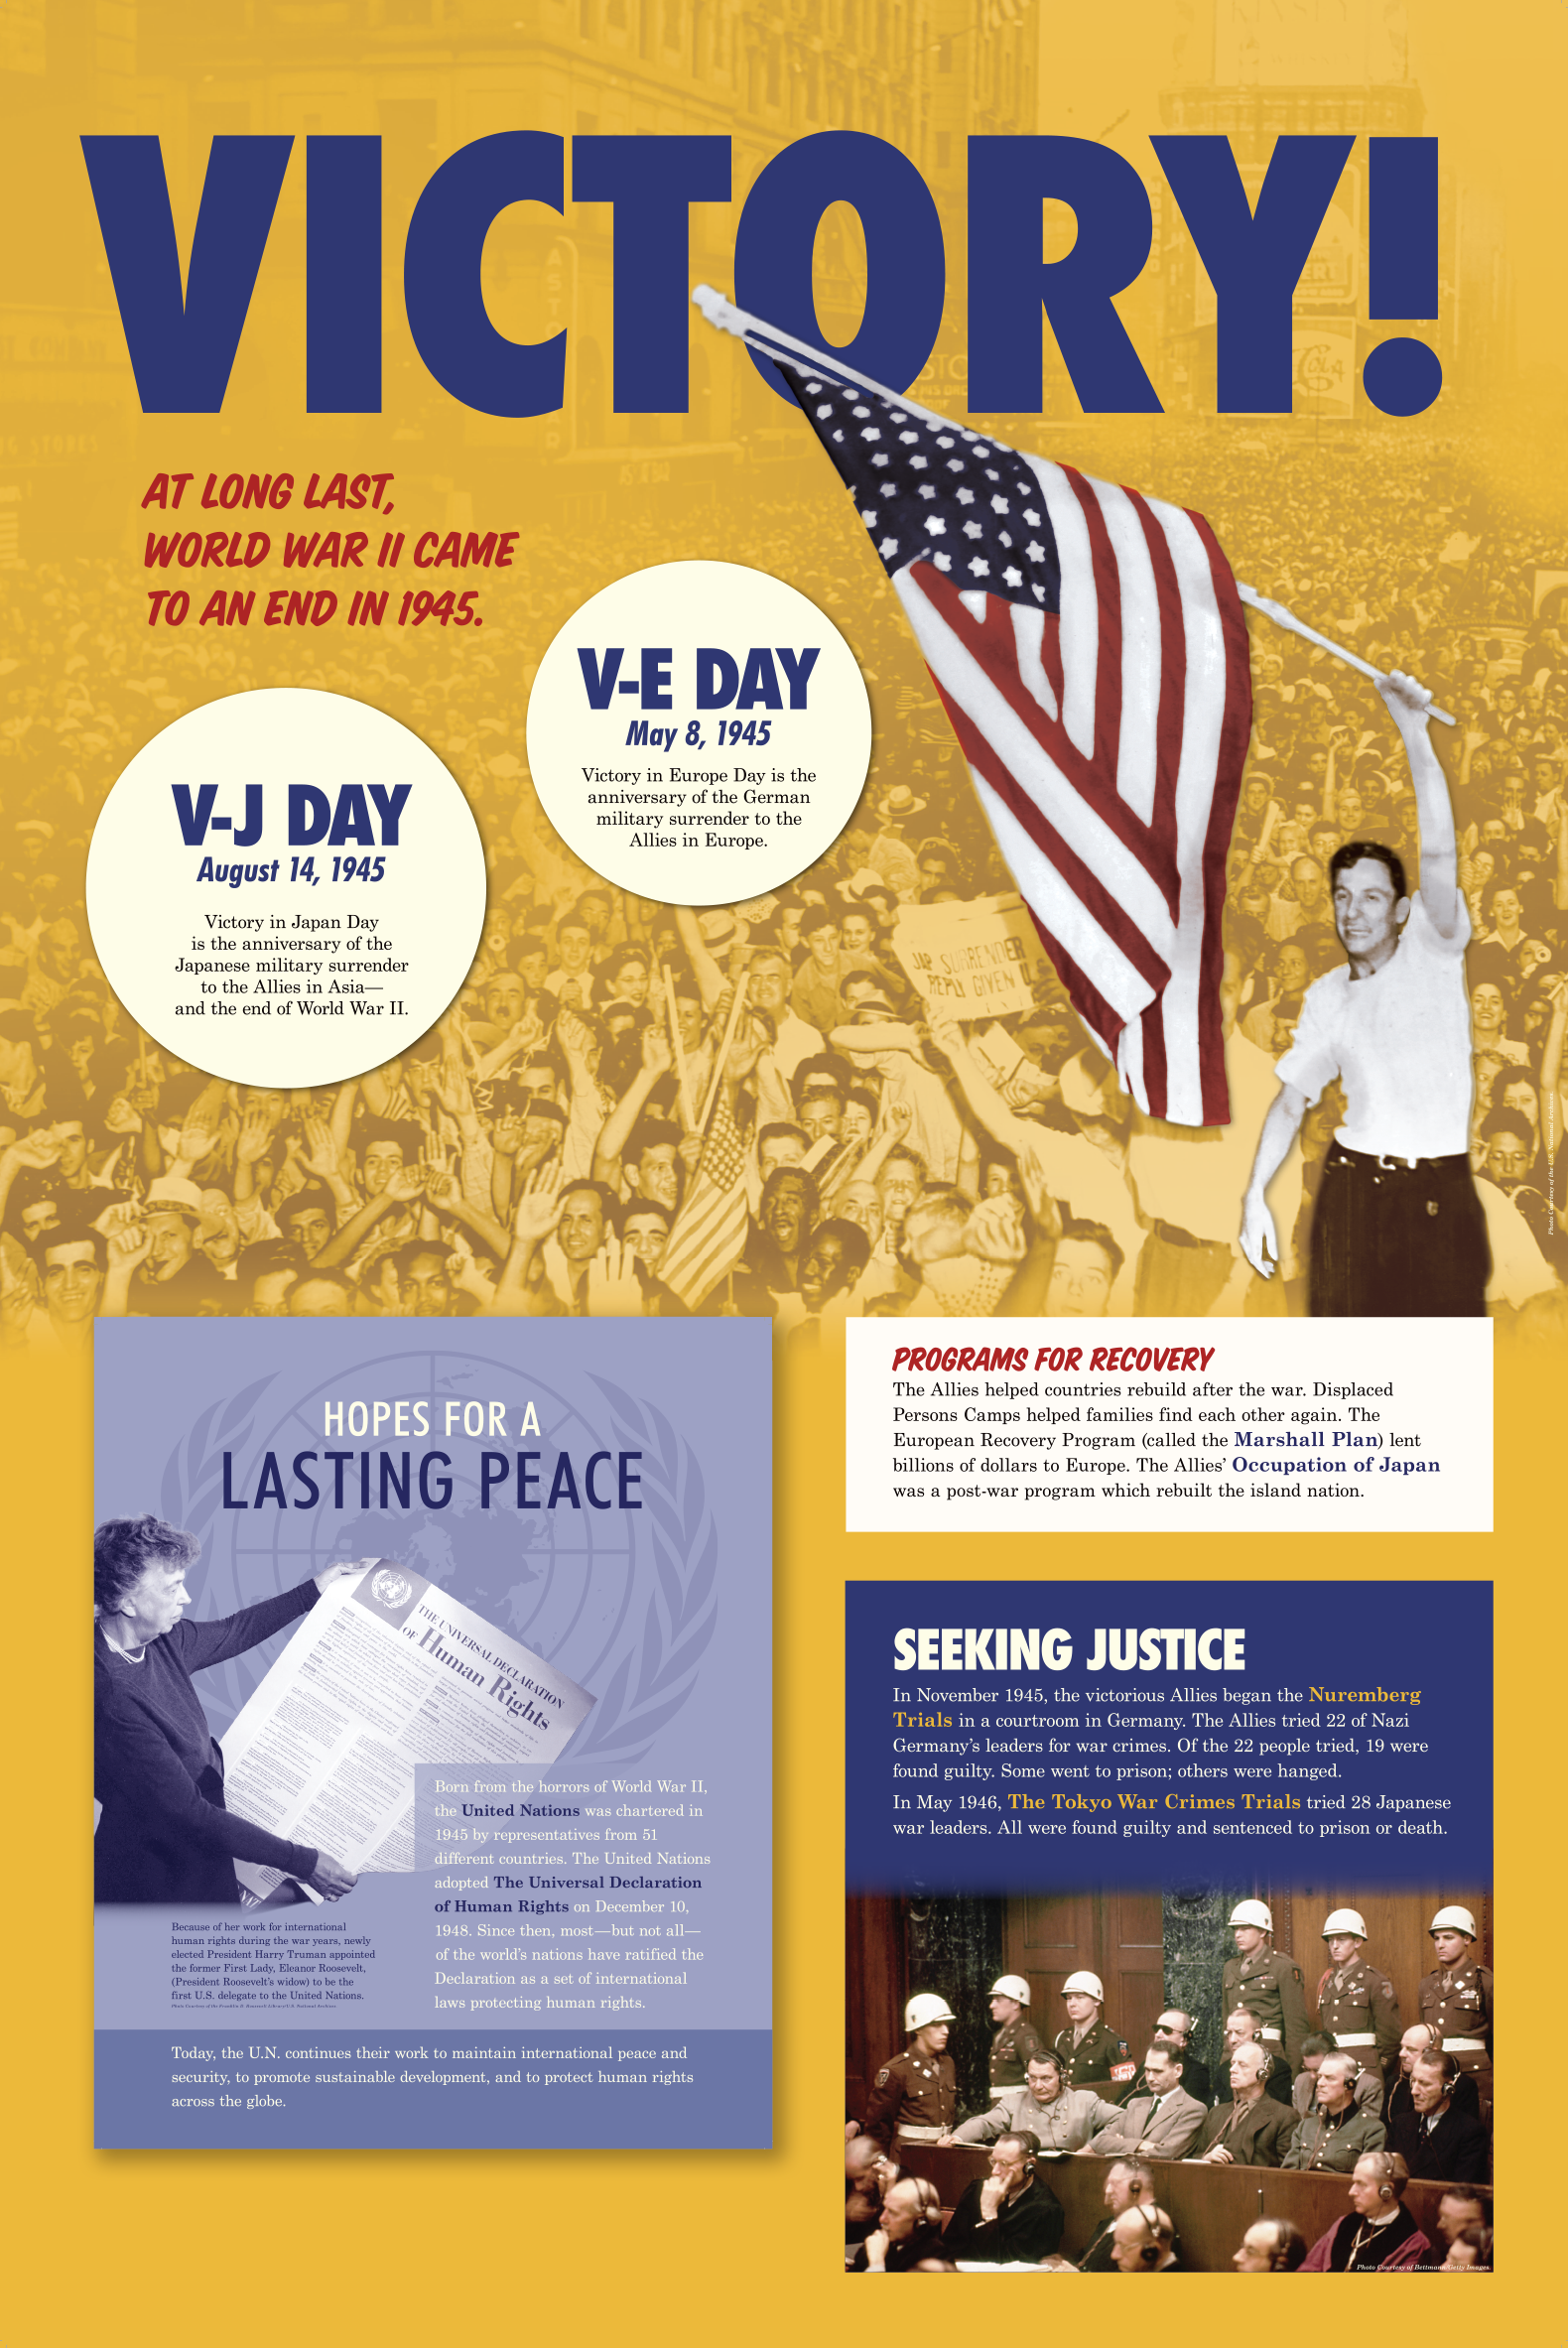 WWII-exhibit_11-LP-001_Victory!.png